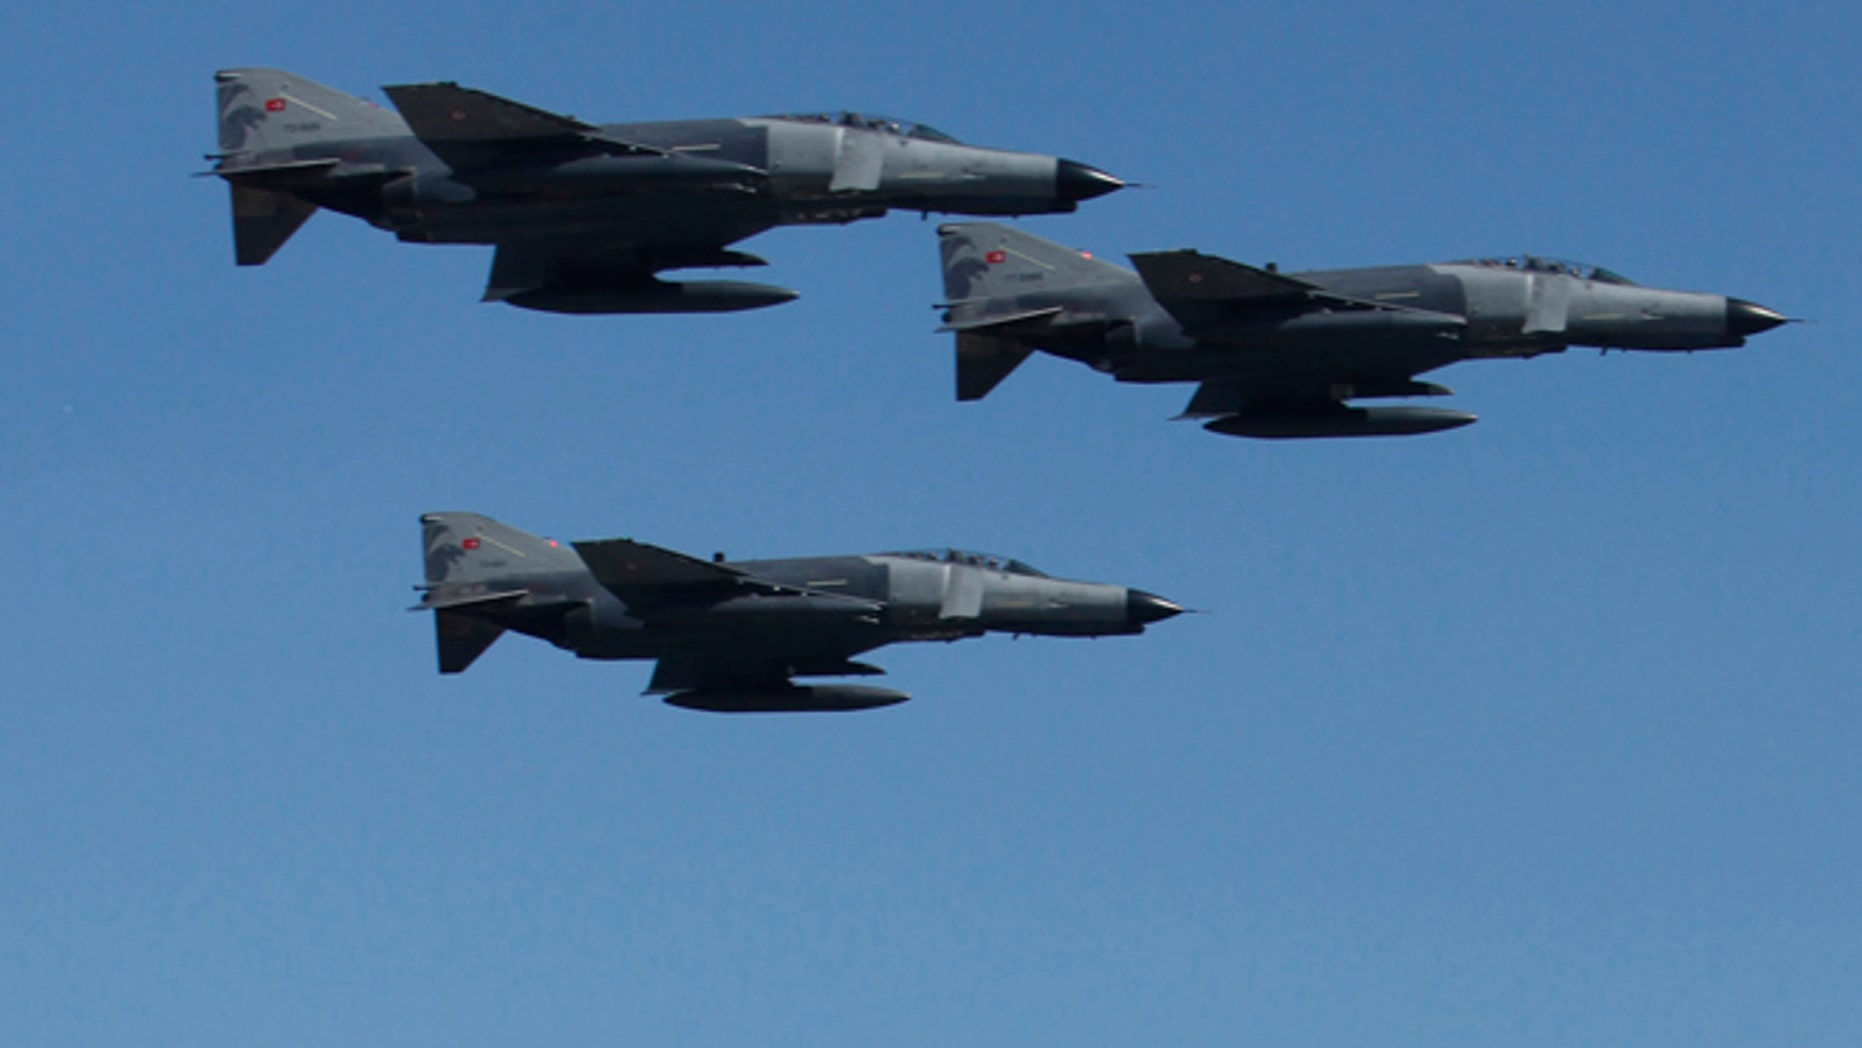 Turkish military aircrafts are shown in this 2010 file photo. Turkey said Syria shot down one of its air force jets Friday.